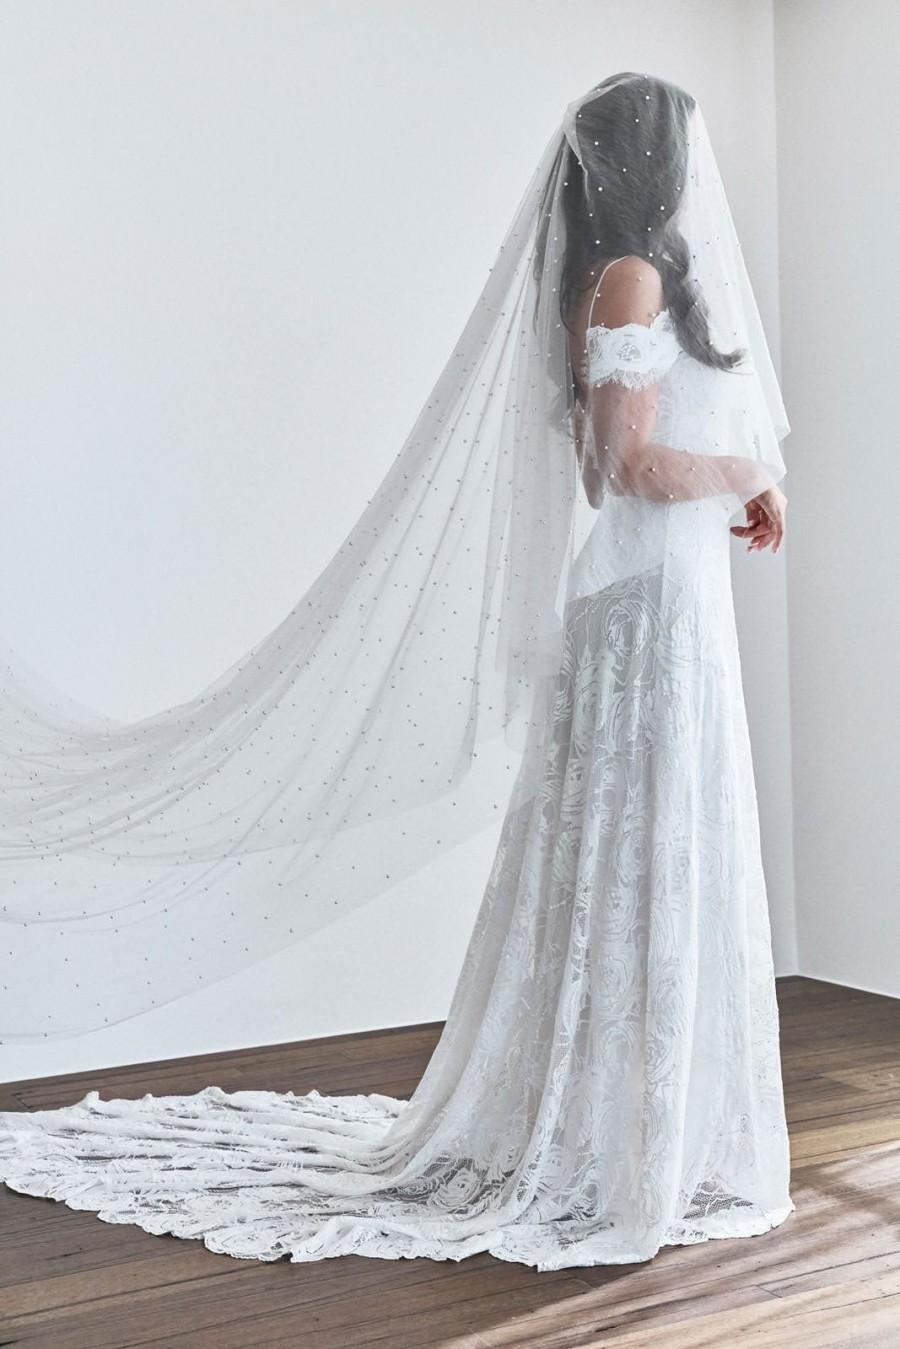 Wedding - Amelia Veil with pearls and a blusher (blusher veil, veil with pearls, cape veil, wedding veil, bridal accessories)